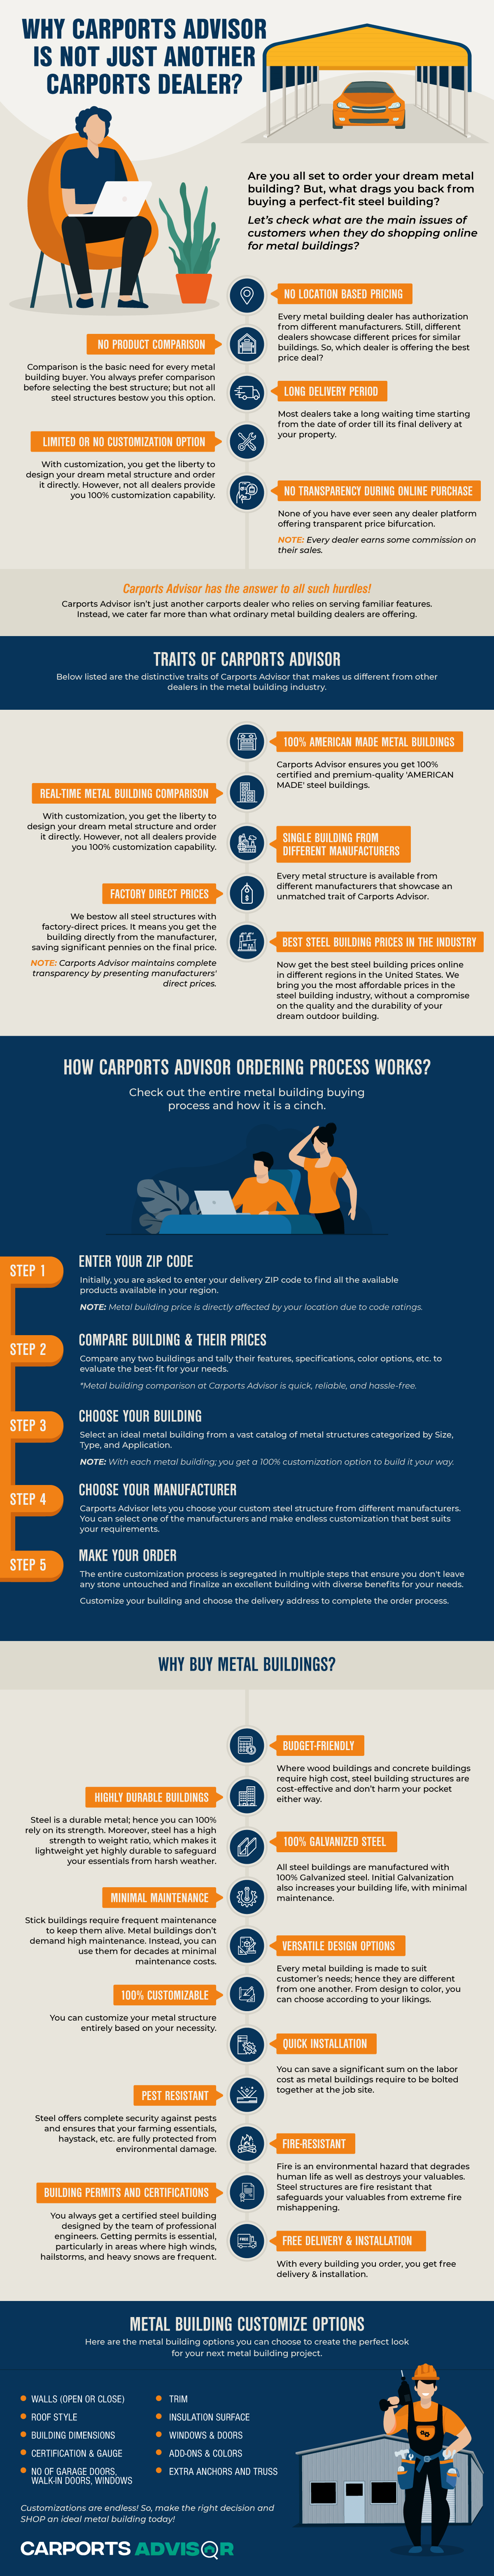 Why Carports Advisor is Not Just Another Carports Dealer #infographic